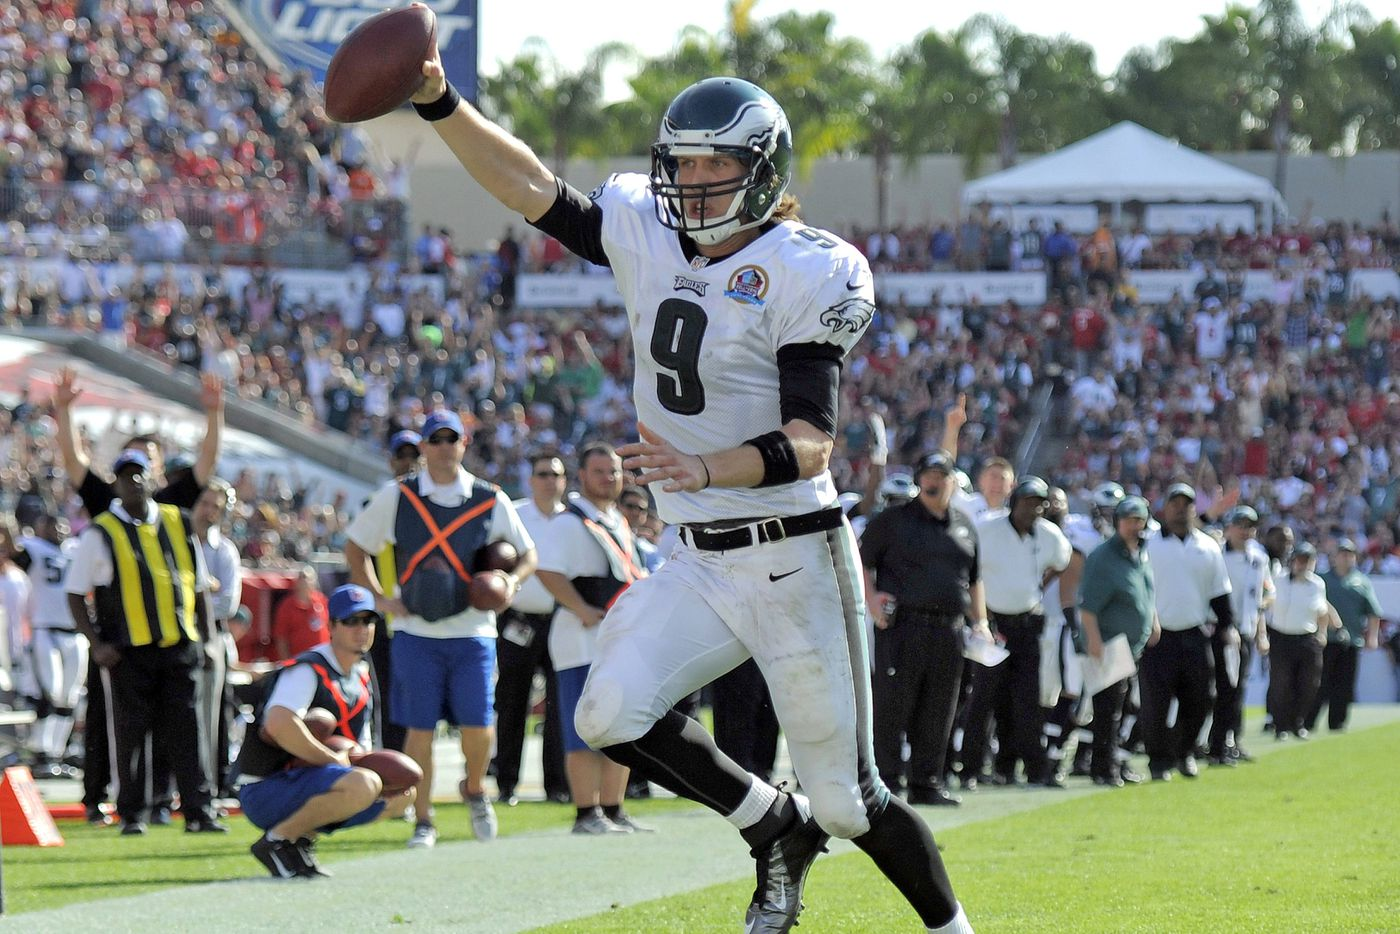 NFL week 2 preview: A quick look at all the games, plus what a Buccaneers star calls Nick Foles